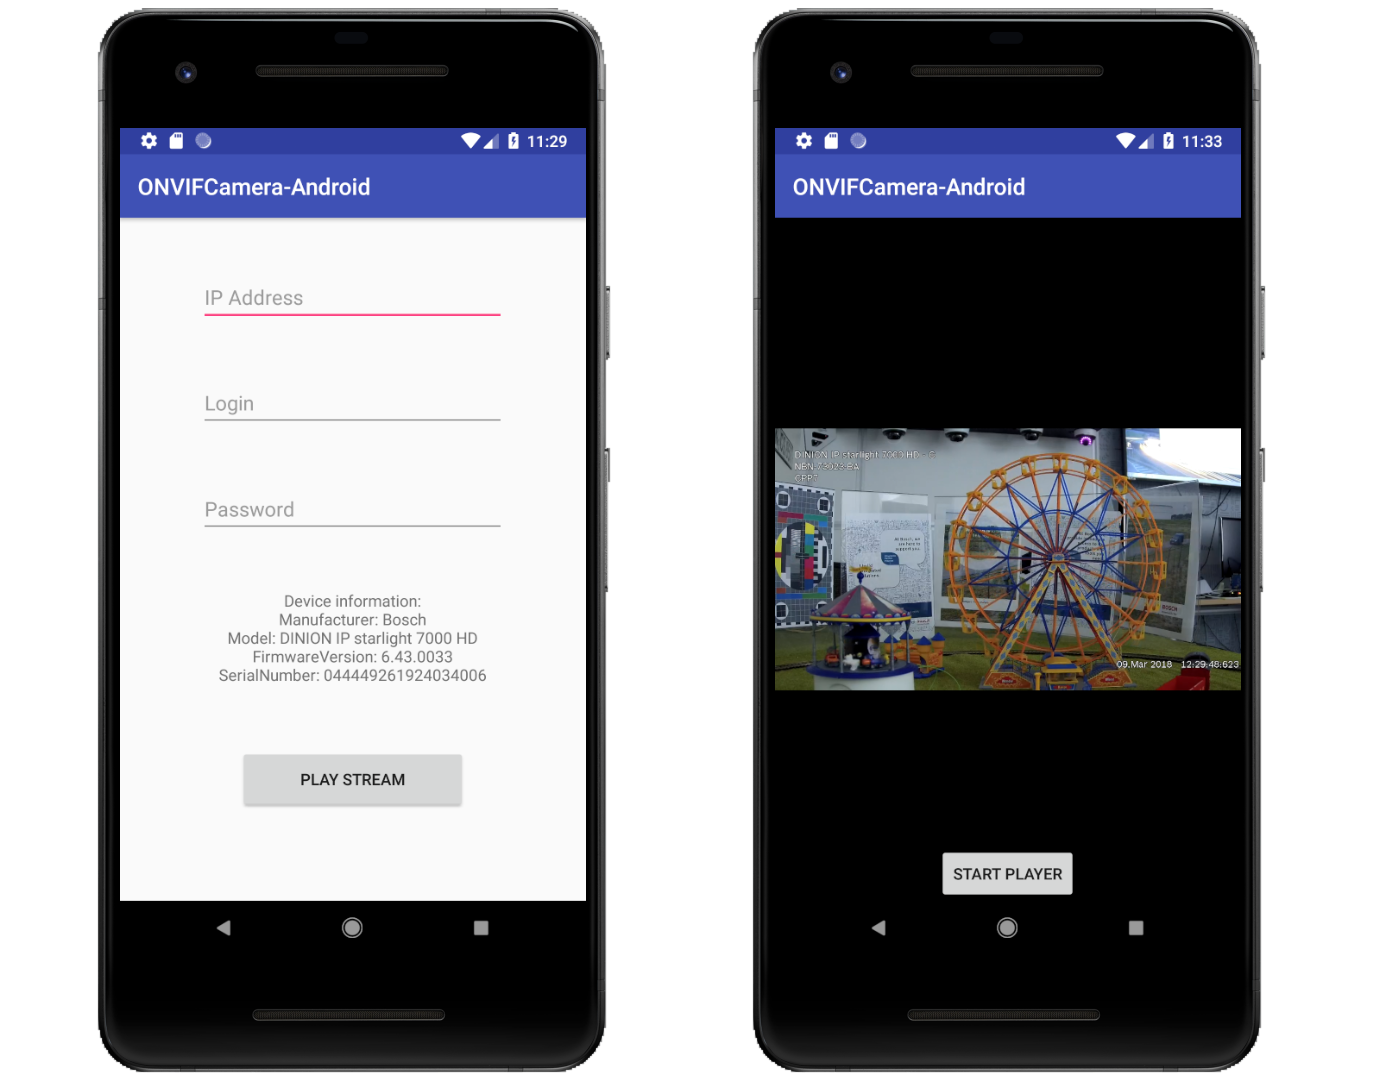 Live stream an ONVIF Camera on your Android app! 📱 - By Remy Virin